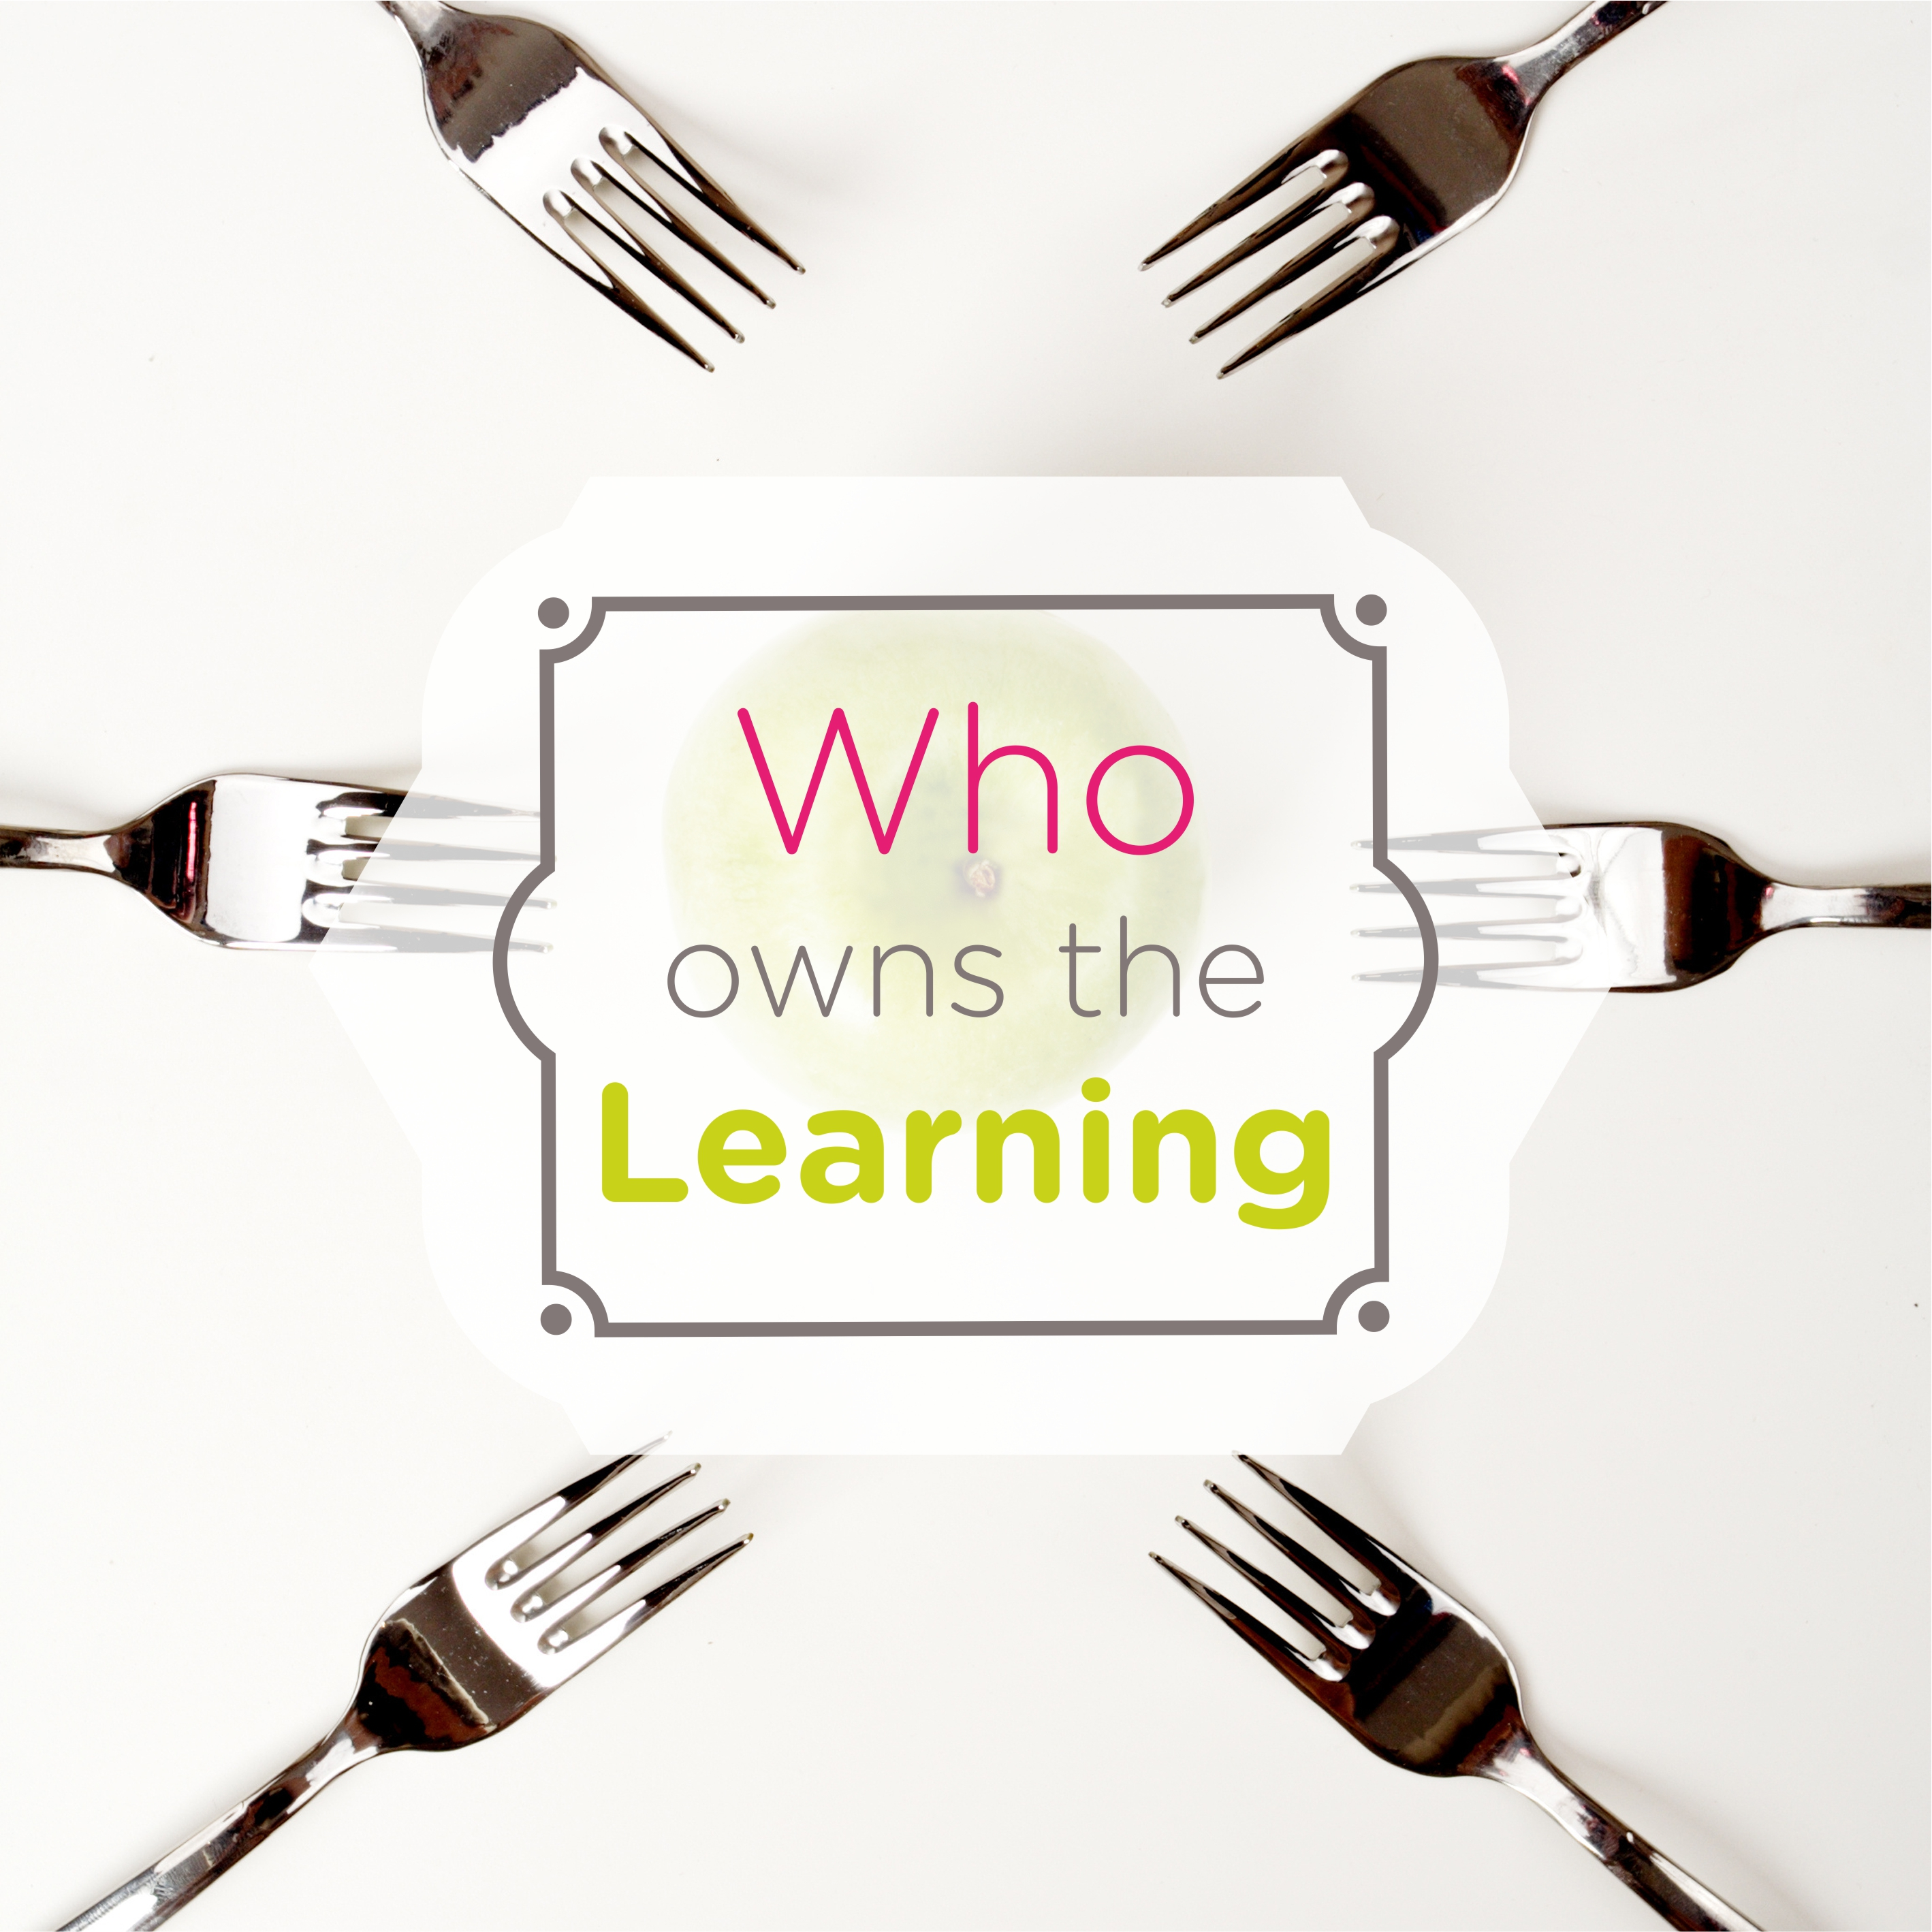 """Who owns the learning? Who owns your learning, more precisely? Your learning, as a process oriented towards whatever objective you currently have. Of course, the first intention of an answer would be """"I do, of course"""". Still, if we give some moments of reflection we might find that the apparent simplicity of this question get us to the complexity of the answer. As our learning, even if we do not have a specific objective, is highly influenced in different ways and amplitudes by other factors. In their recent book """"Creating a Learning Society - A New Approach to Growth, Development, and Social Progress"""" the authors J. E. STIGLITZ, and B. C. GREENWALD describe the """"major determinants of learning: (1) learning capabilities; (2) access to knowledge; (3) the catalysts for learning; (4) creating a creative mindset—the right cognitive frames; (5) contacts—people with whom one interacts—which can catalyze learning, help create the right cognitive frame, and provide crucial inputs into the learning process; and (6) the context for learning."""" (STIGLITZ, J. E., B. C. GREENWALD, Creating a Learning Society - A New Approach to Growth, Development, and Social Progress, Columbia University Press, 2014). If we take the main actors involved in the learning process The learner The educator (teacher, professor, trainer, facilitator, coach, manager, leader, mentor) The group (class, team, organization) The society we may find various levels of the learning process ownership, levels that are dynamic, moving with the velocity of change, which ultimately lead to a greater need for self-learning."""